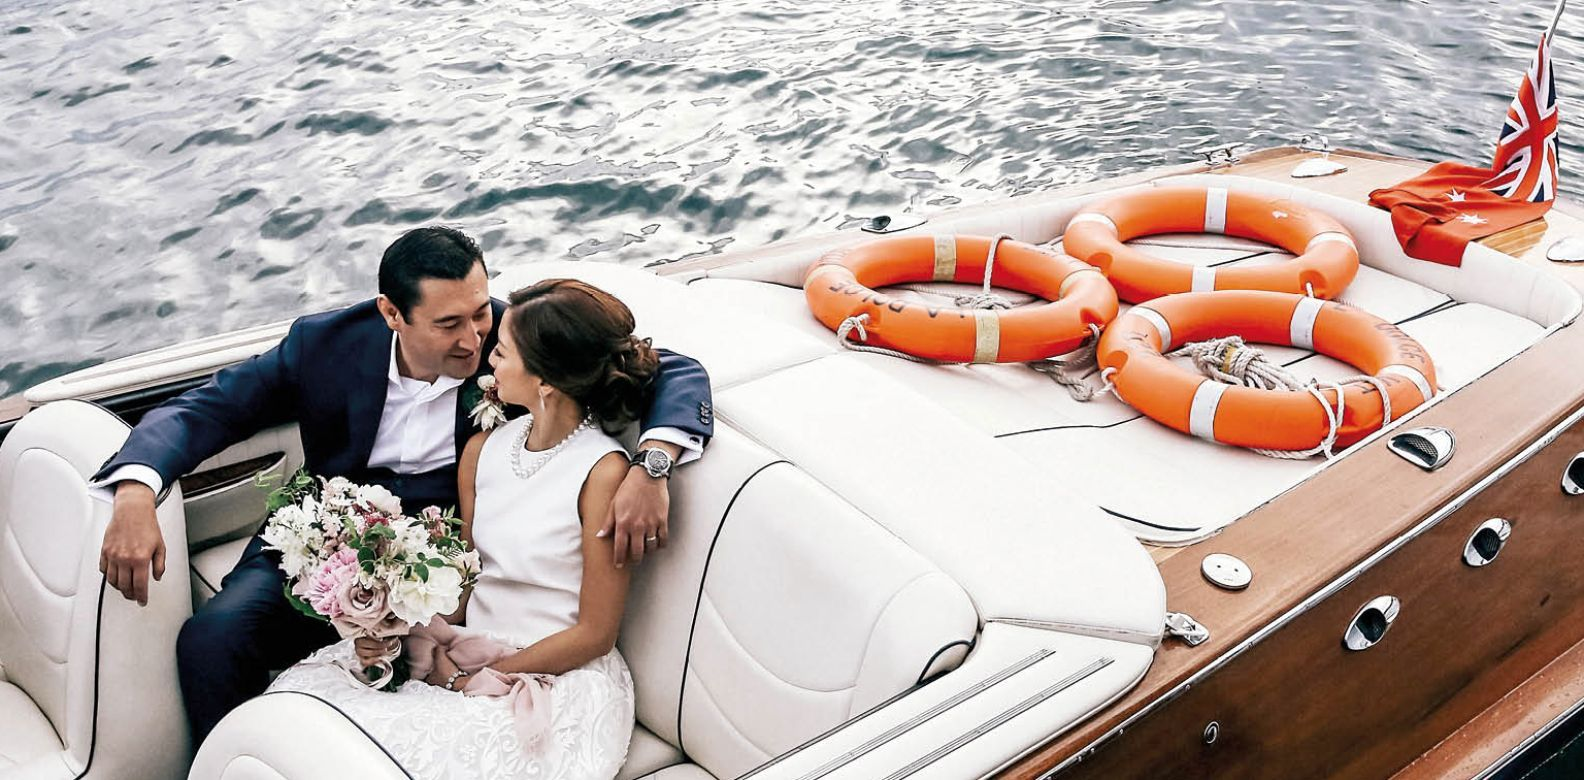 6 Luxurious Real Weddings To Inspire Your Big Day Plans